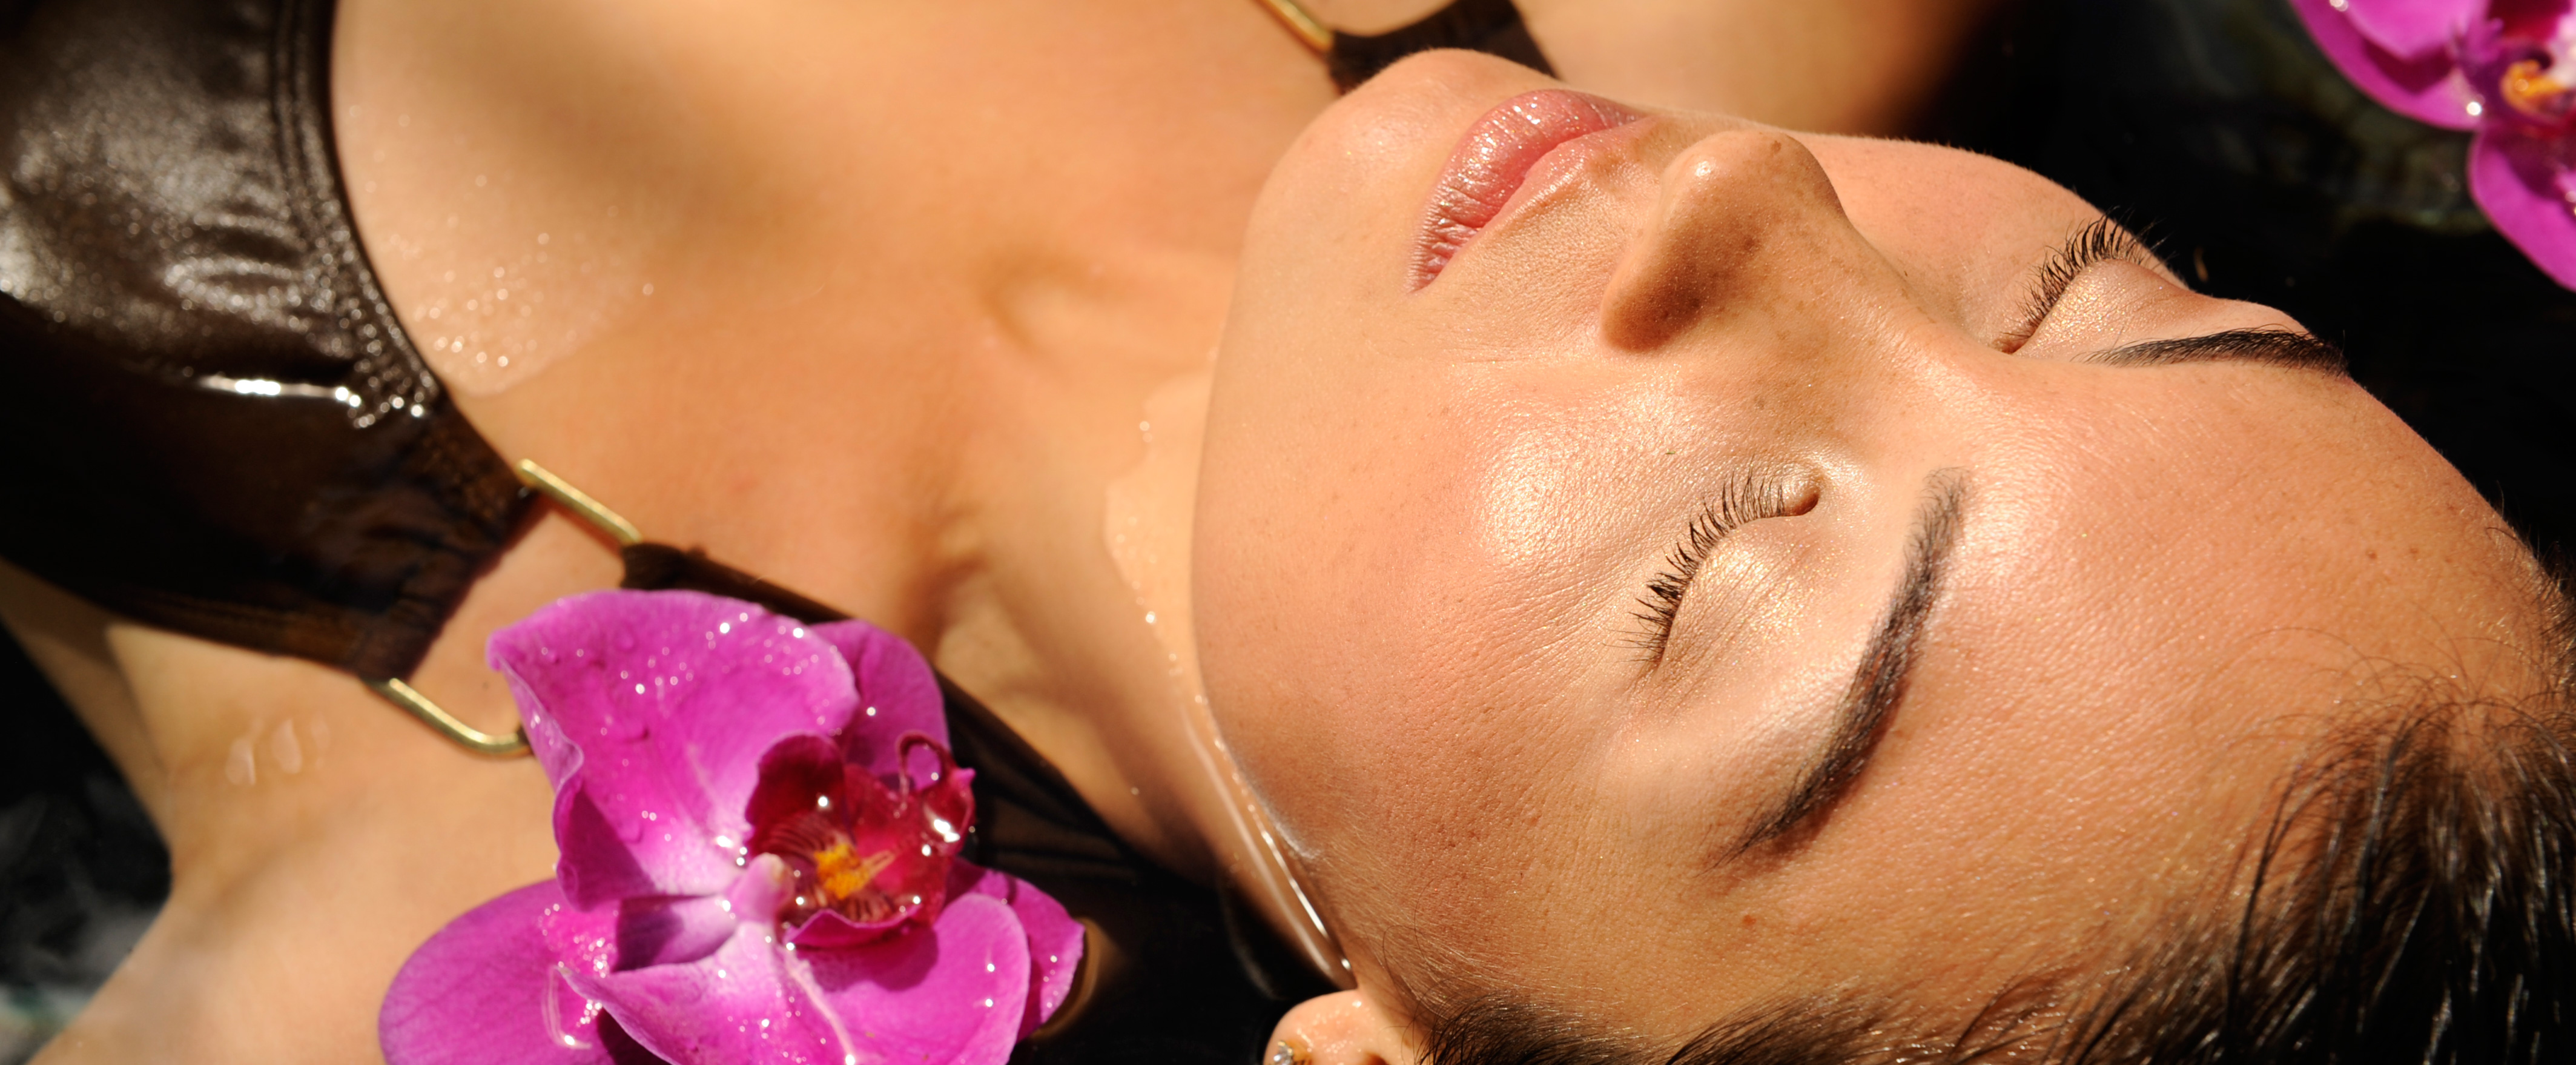 A woman lying in water with her eyes closed, with floating orchids on either side of her face